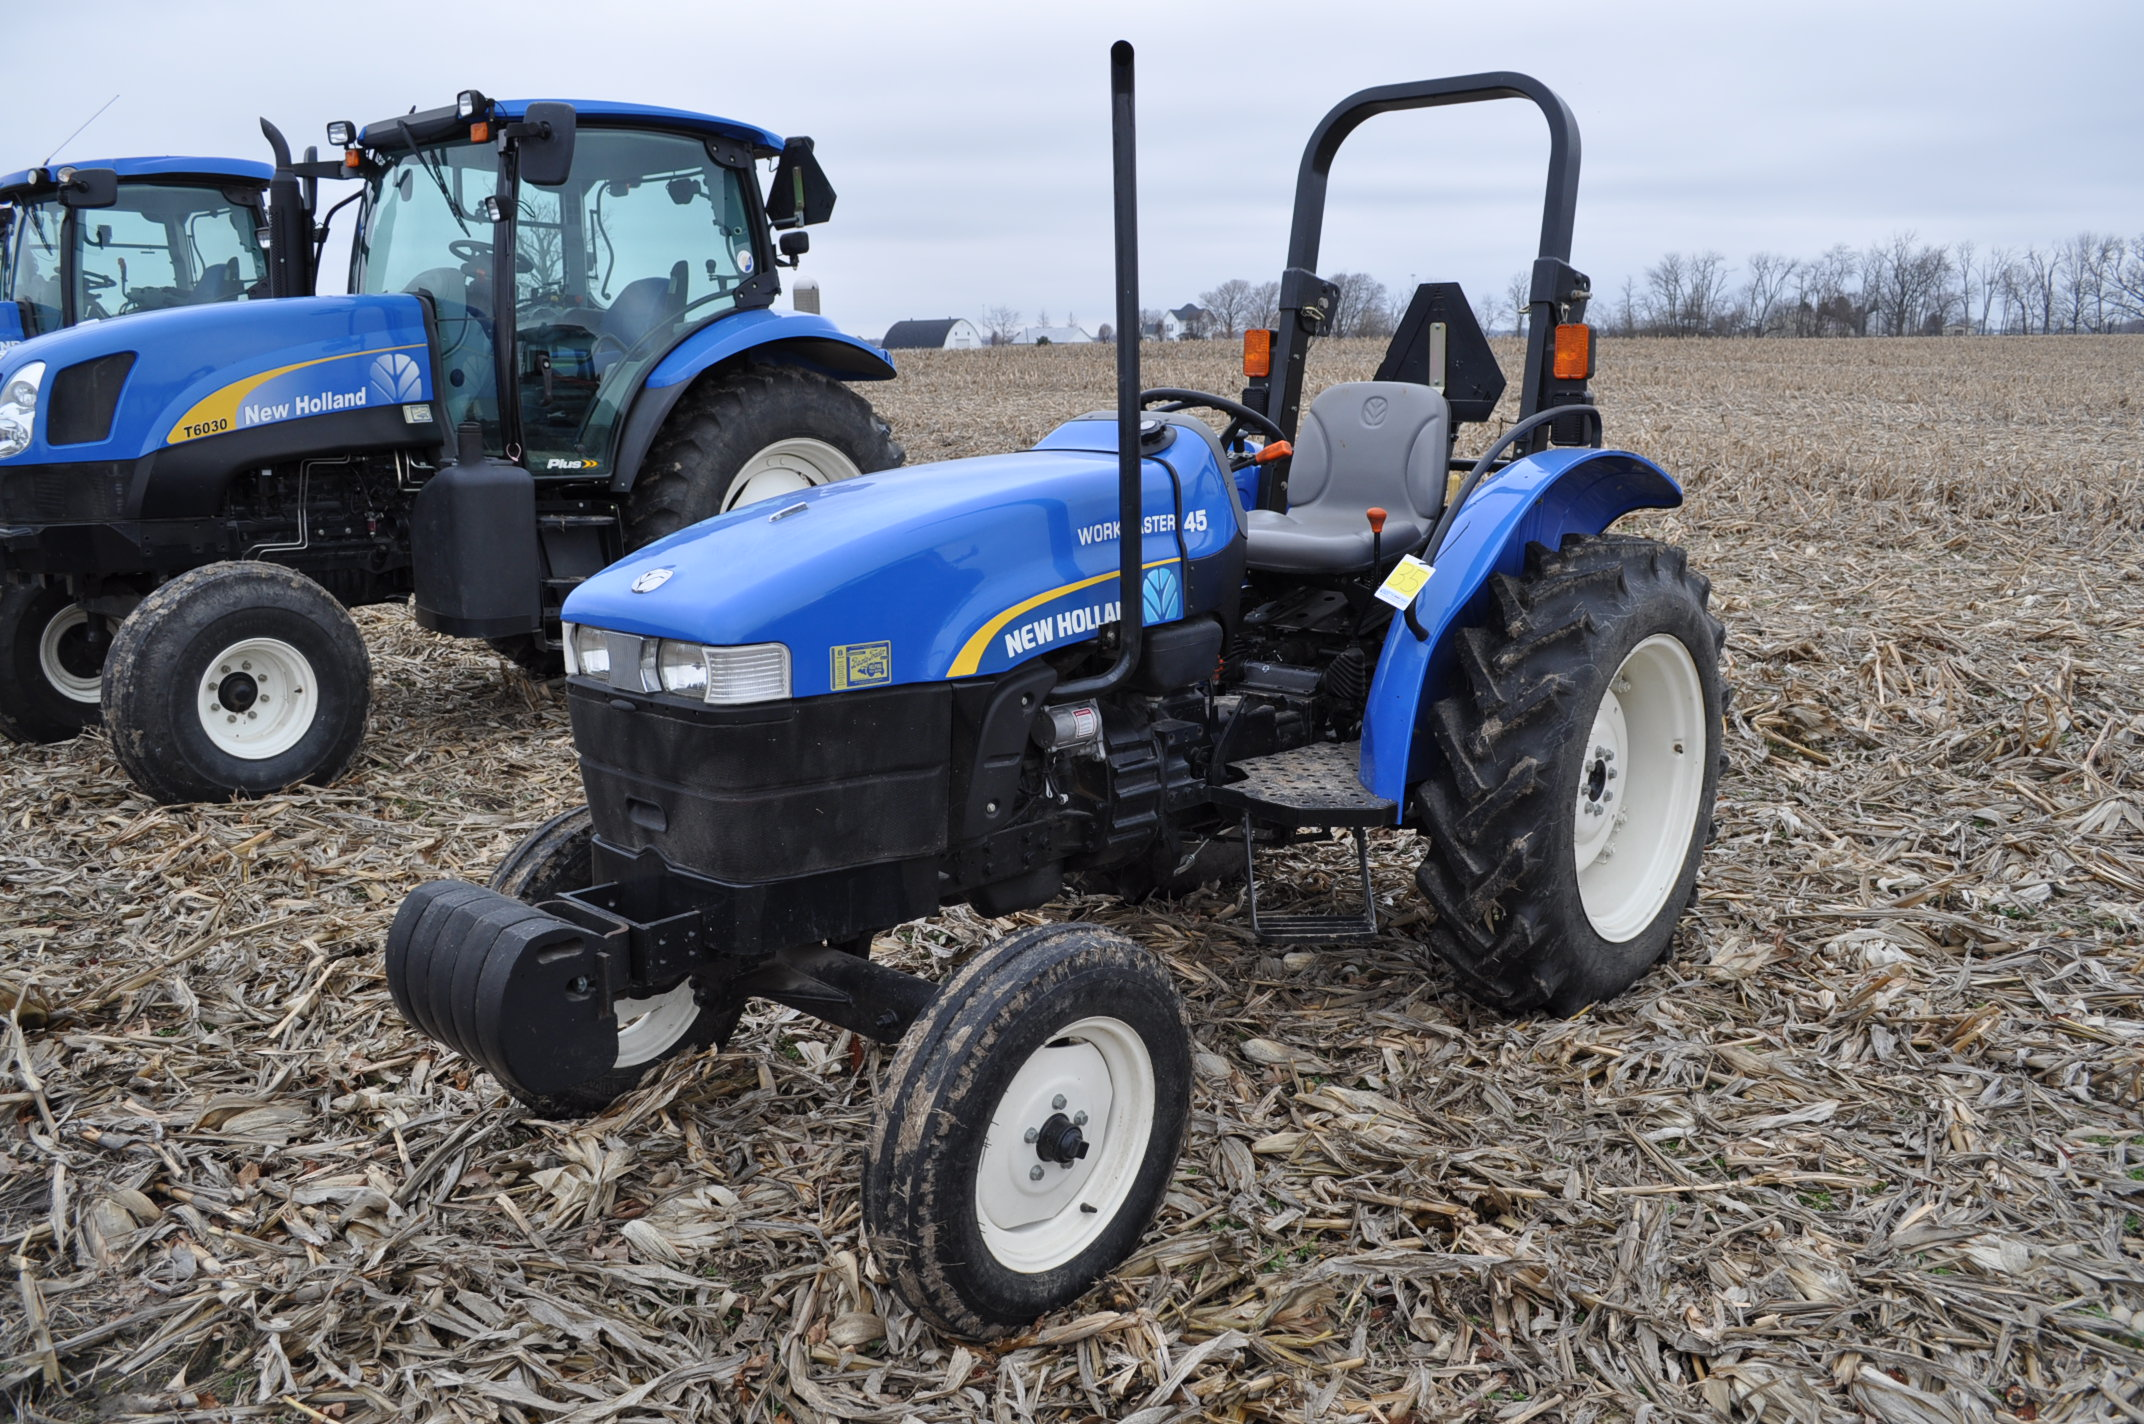 New Holland Workmaster 45 tractor, front wts, 12.4/11-28 rear, 6.00-16 front, shuttle shift, diesel,